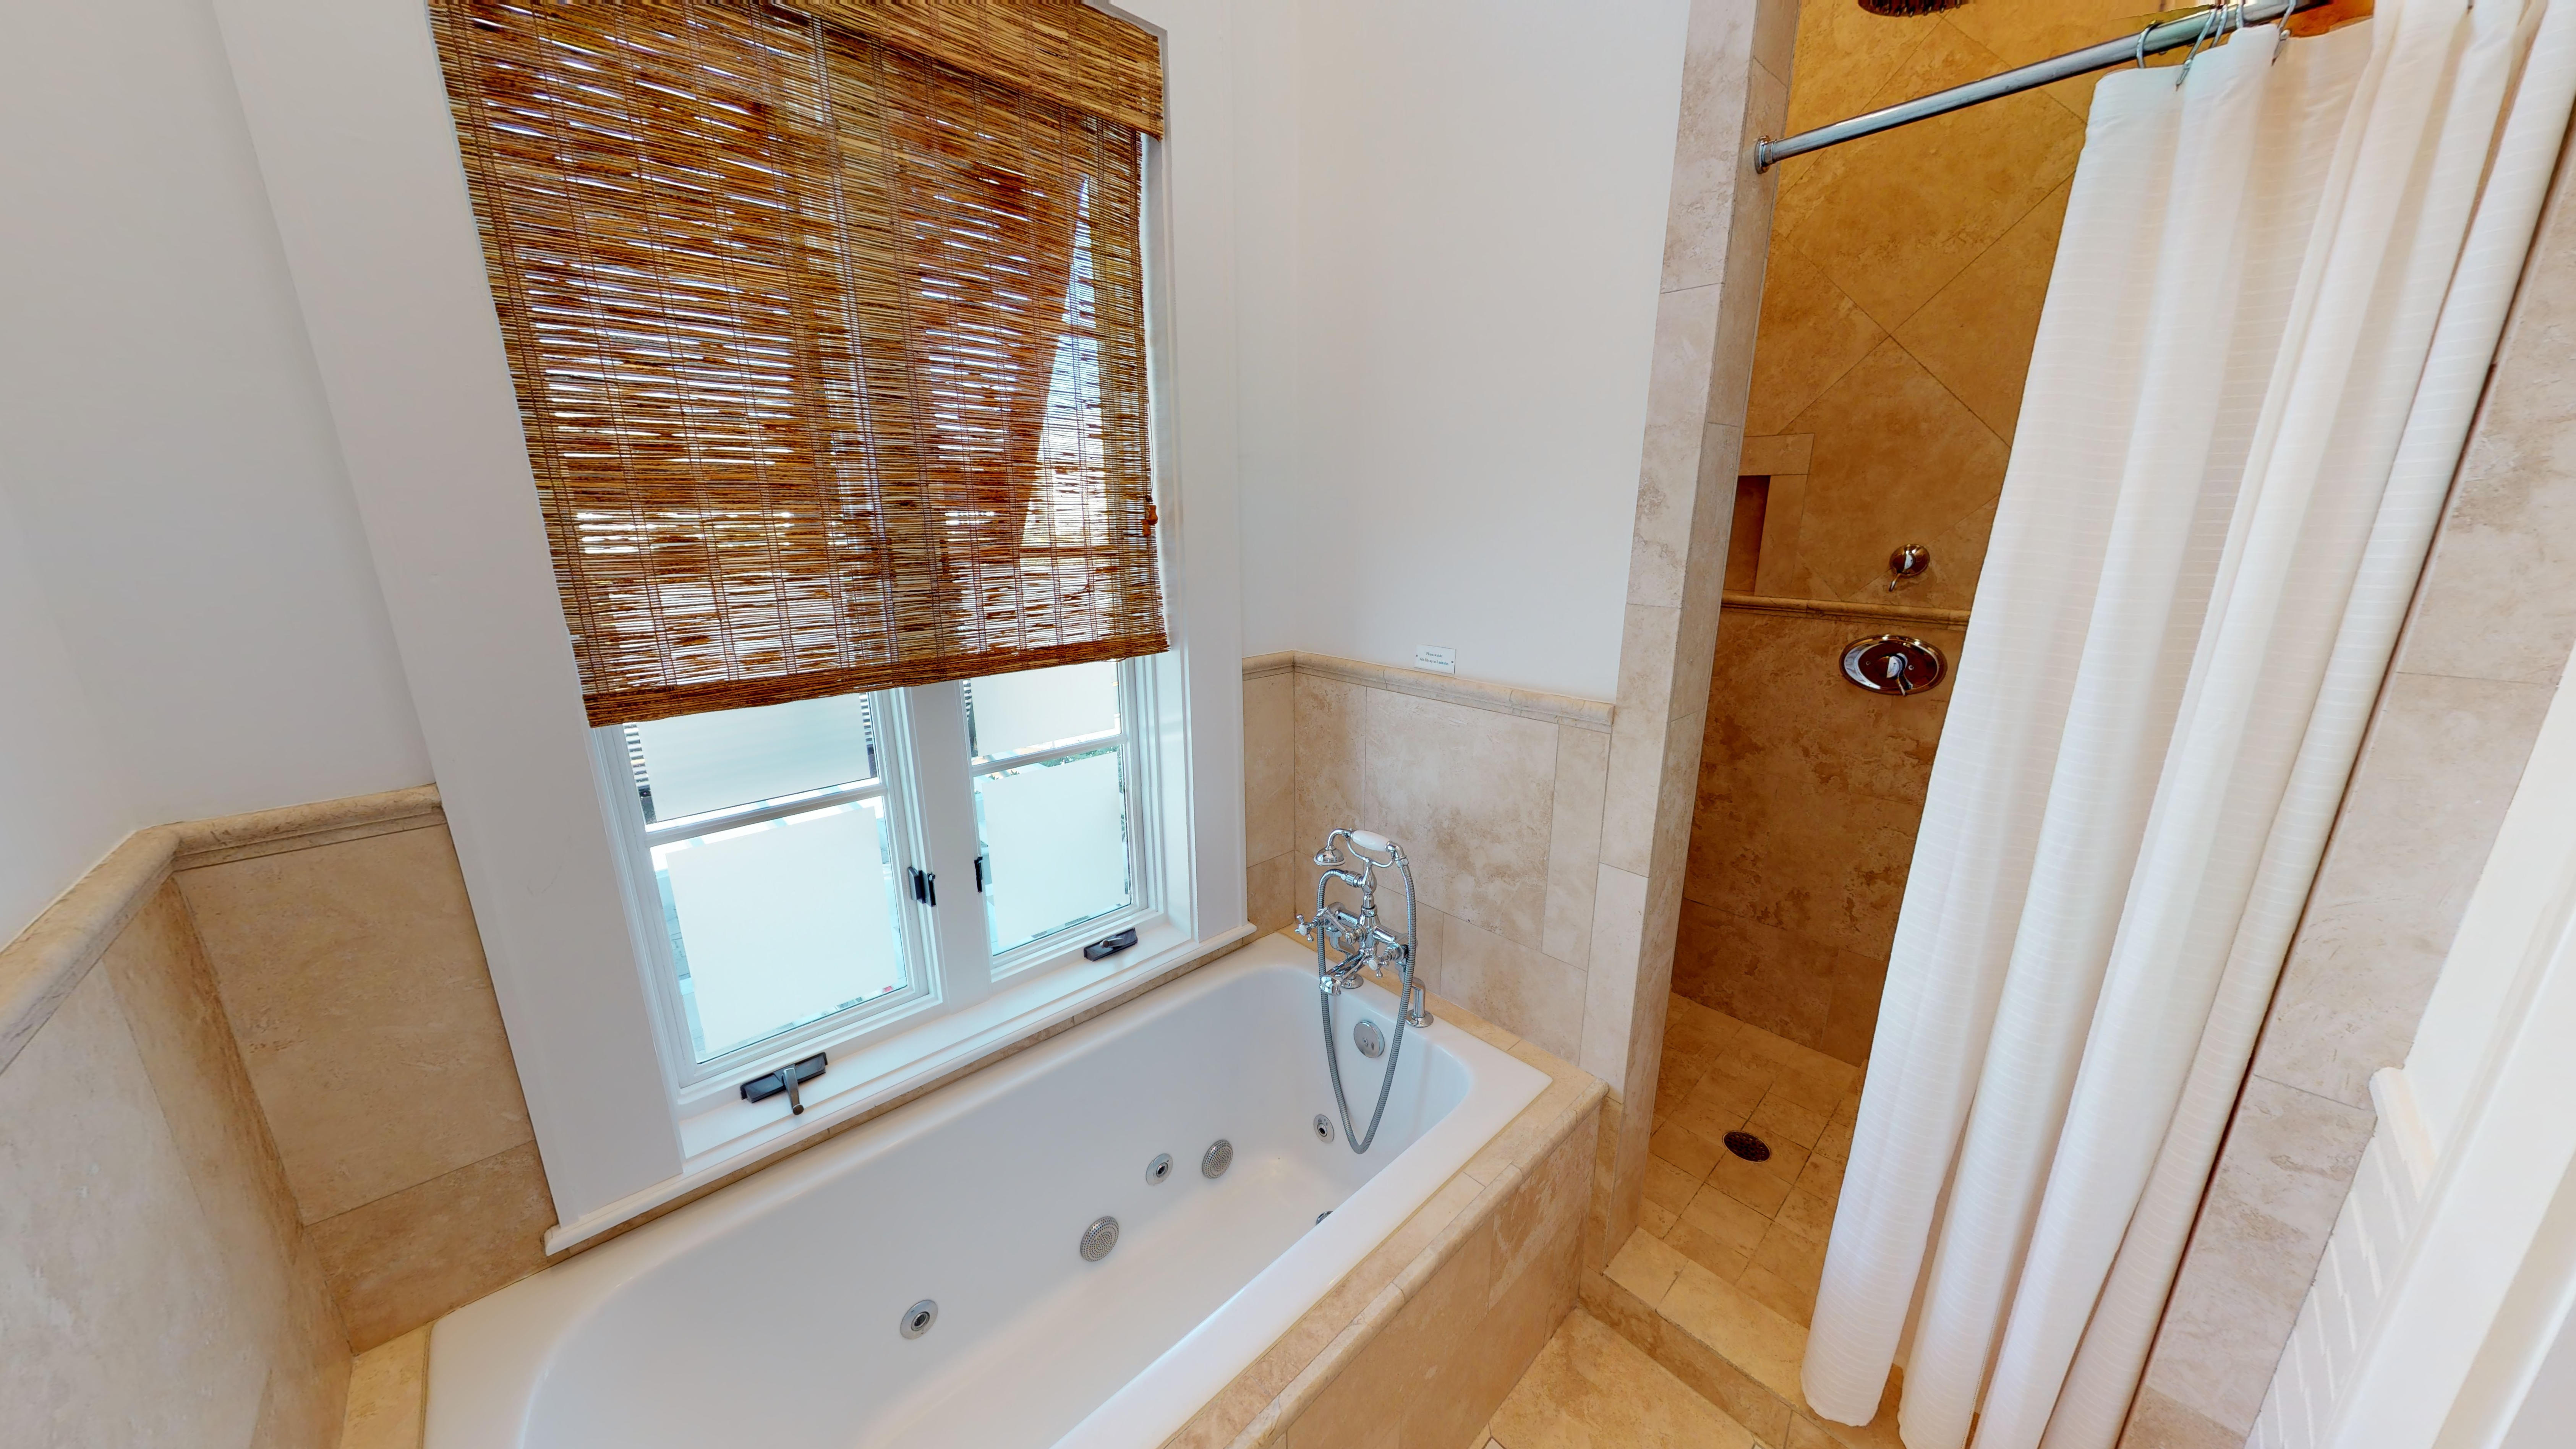 Master bath features a soaking tub and separate shower